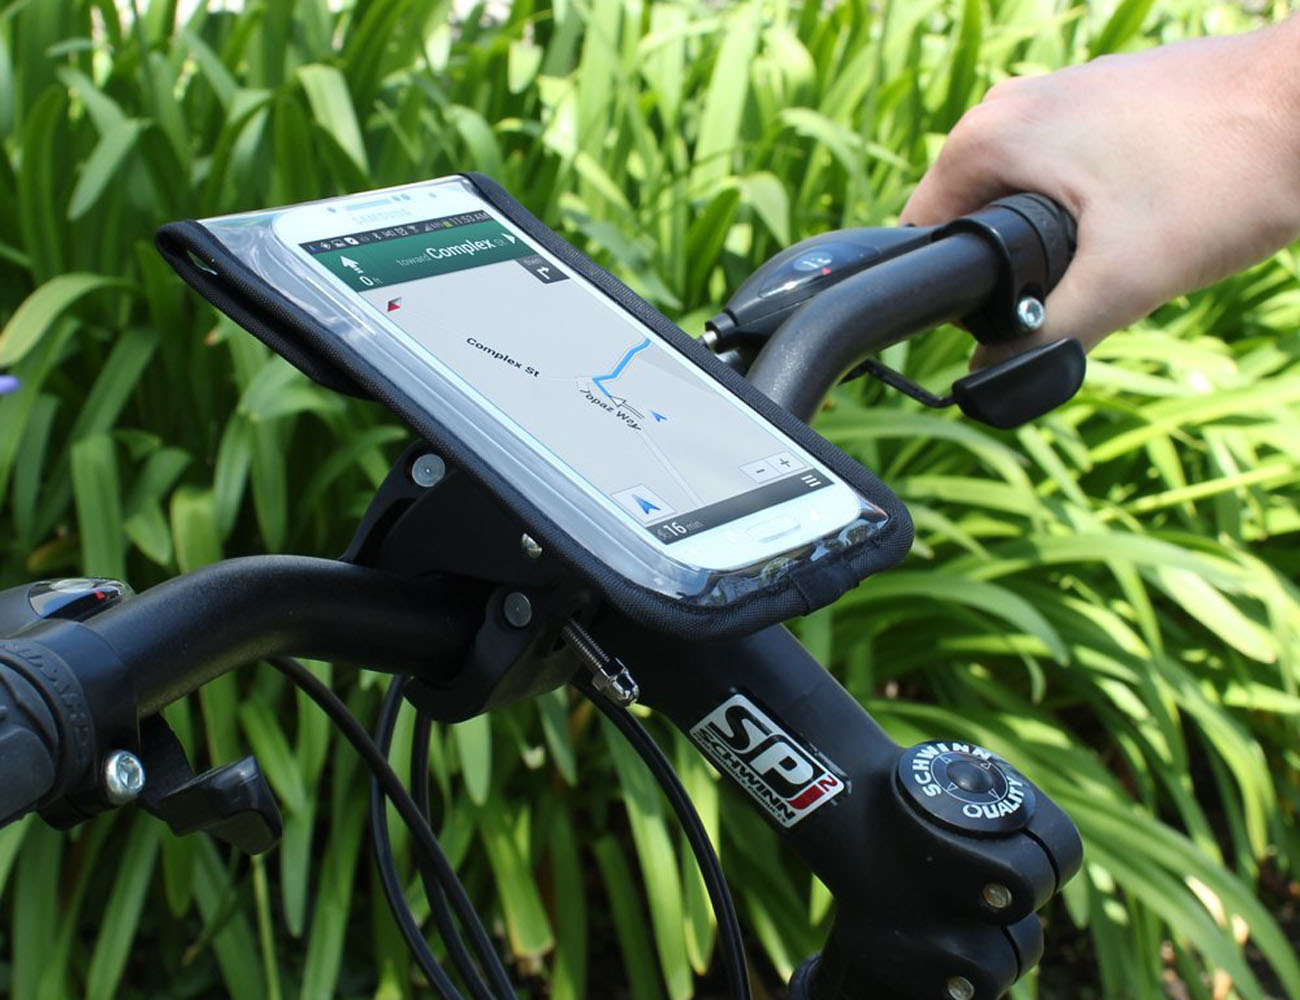 Waterproof Satechi Pro Smartphone Bike Mount